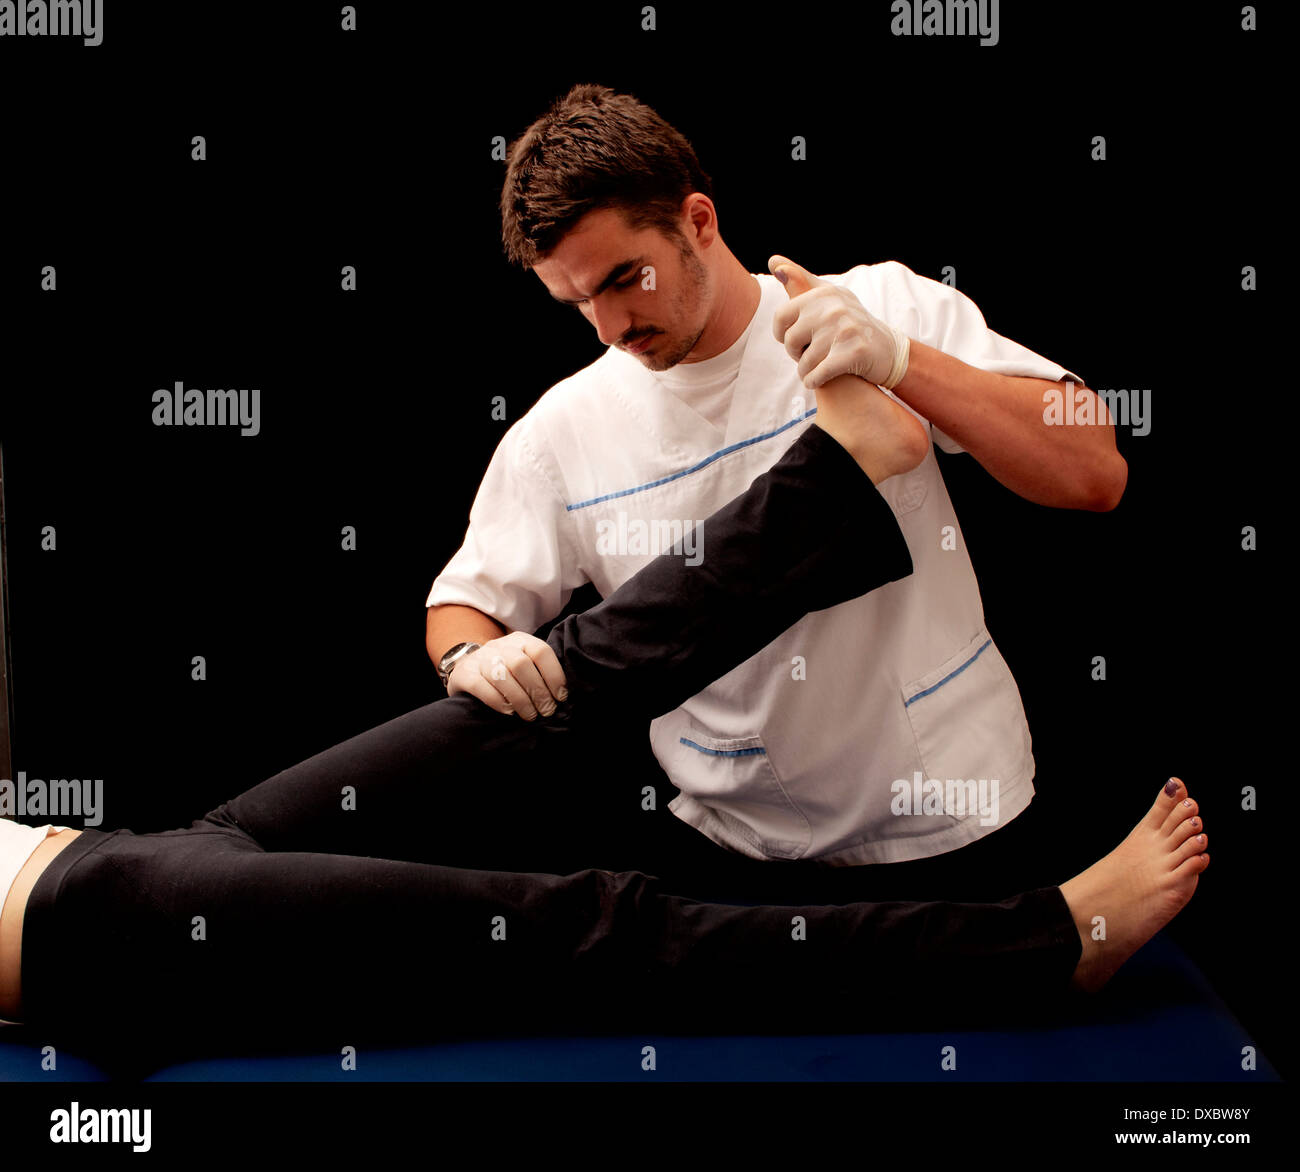 Physical therapy - Stock Image